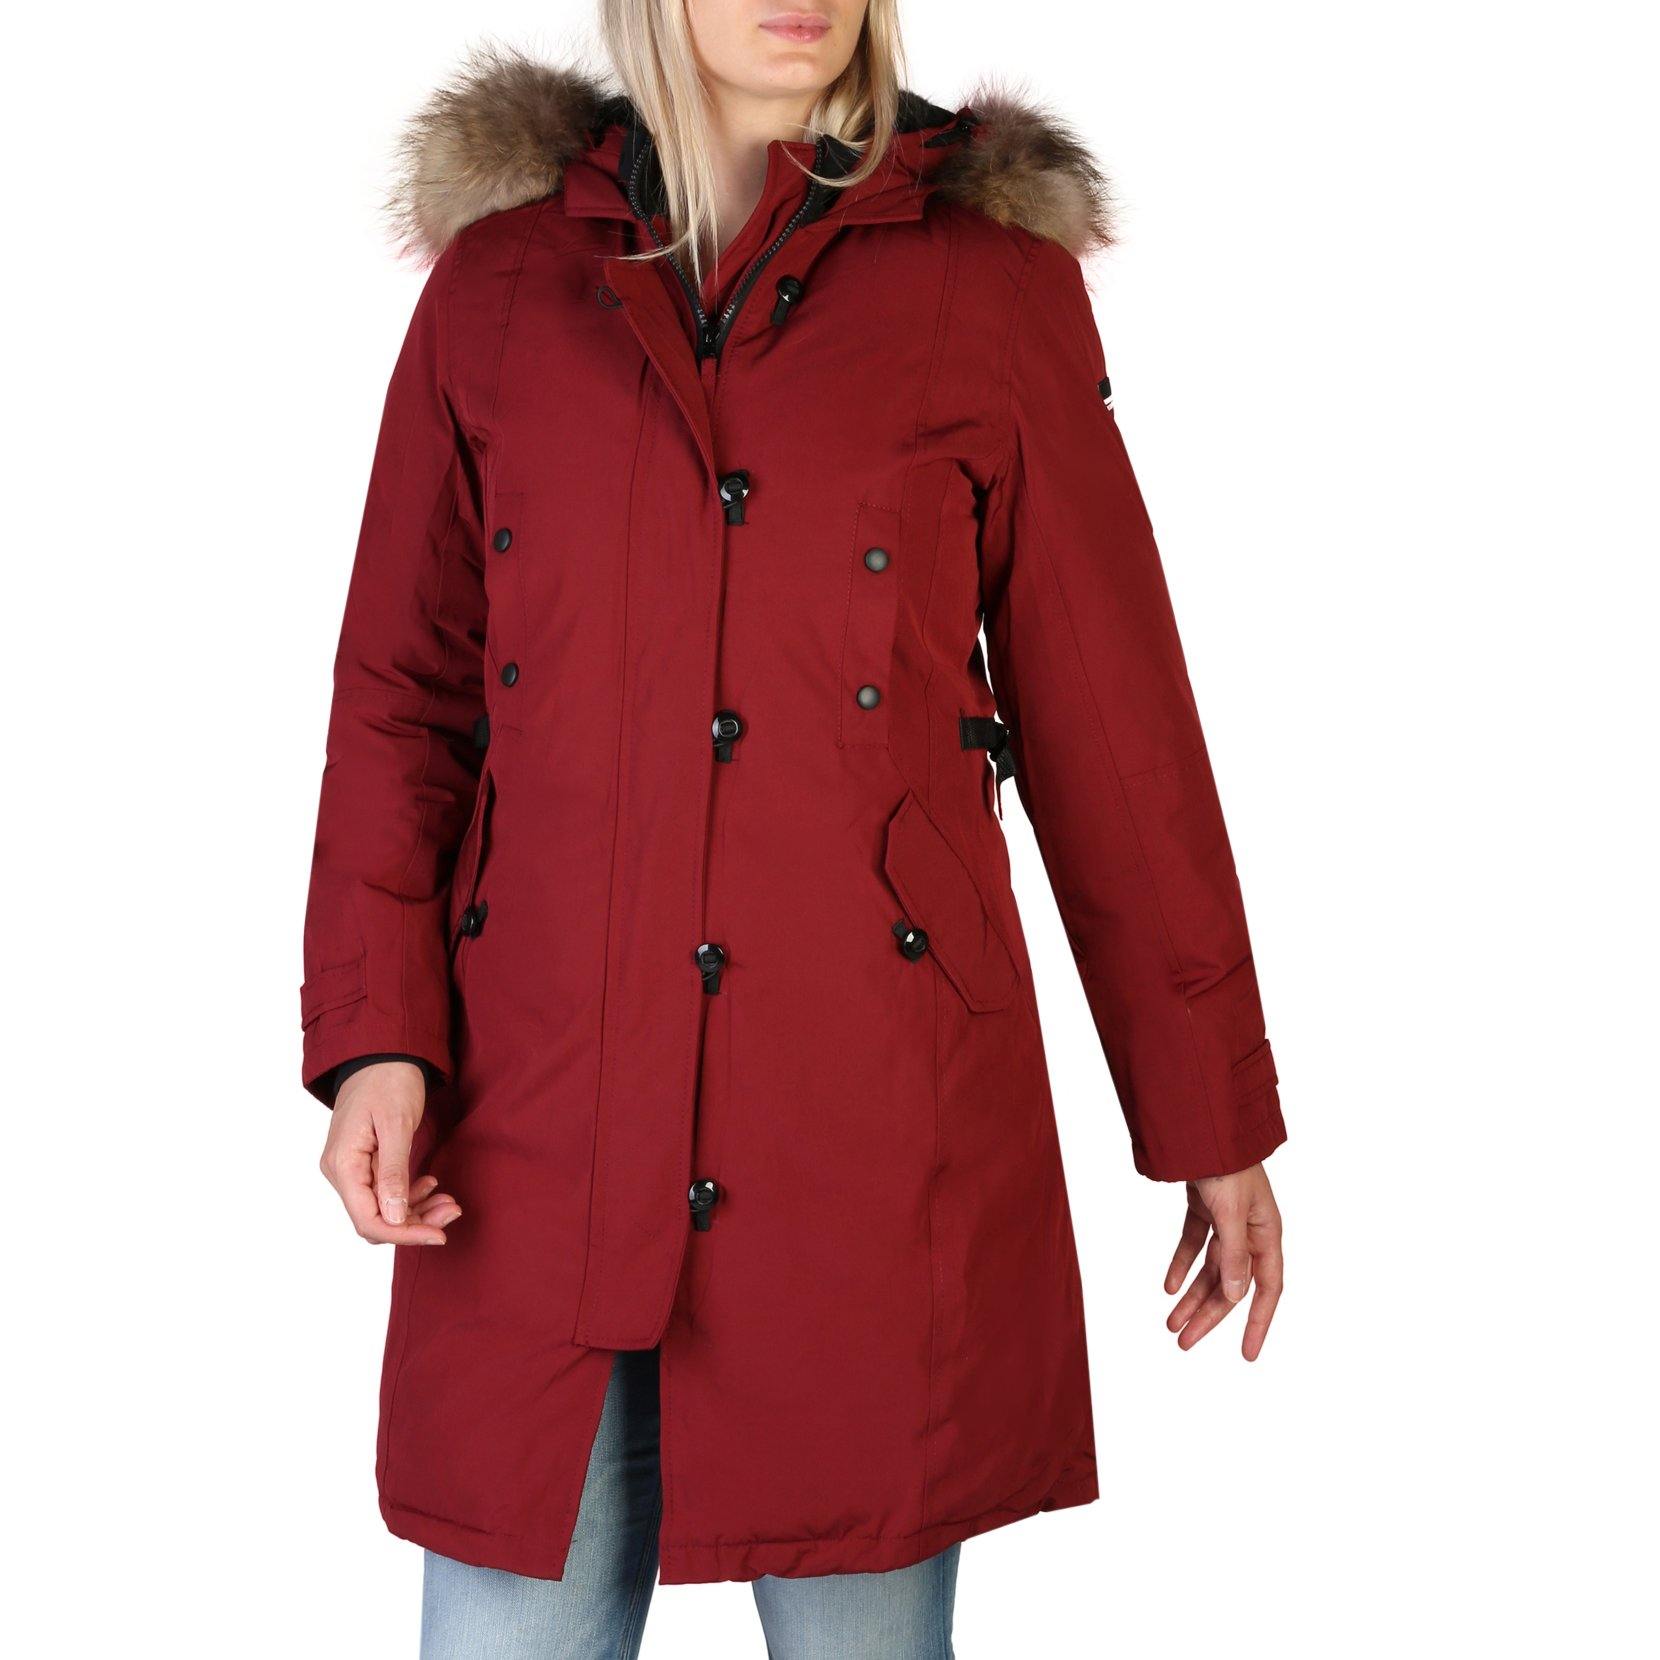 Alessandro Dell'Acqua Women's Jacket Various Colours 348389 - red XS